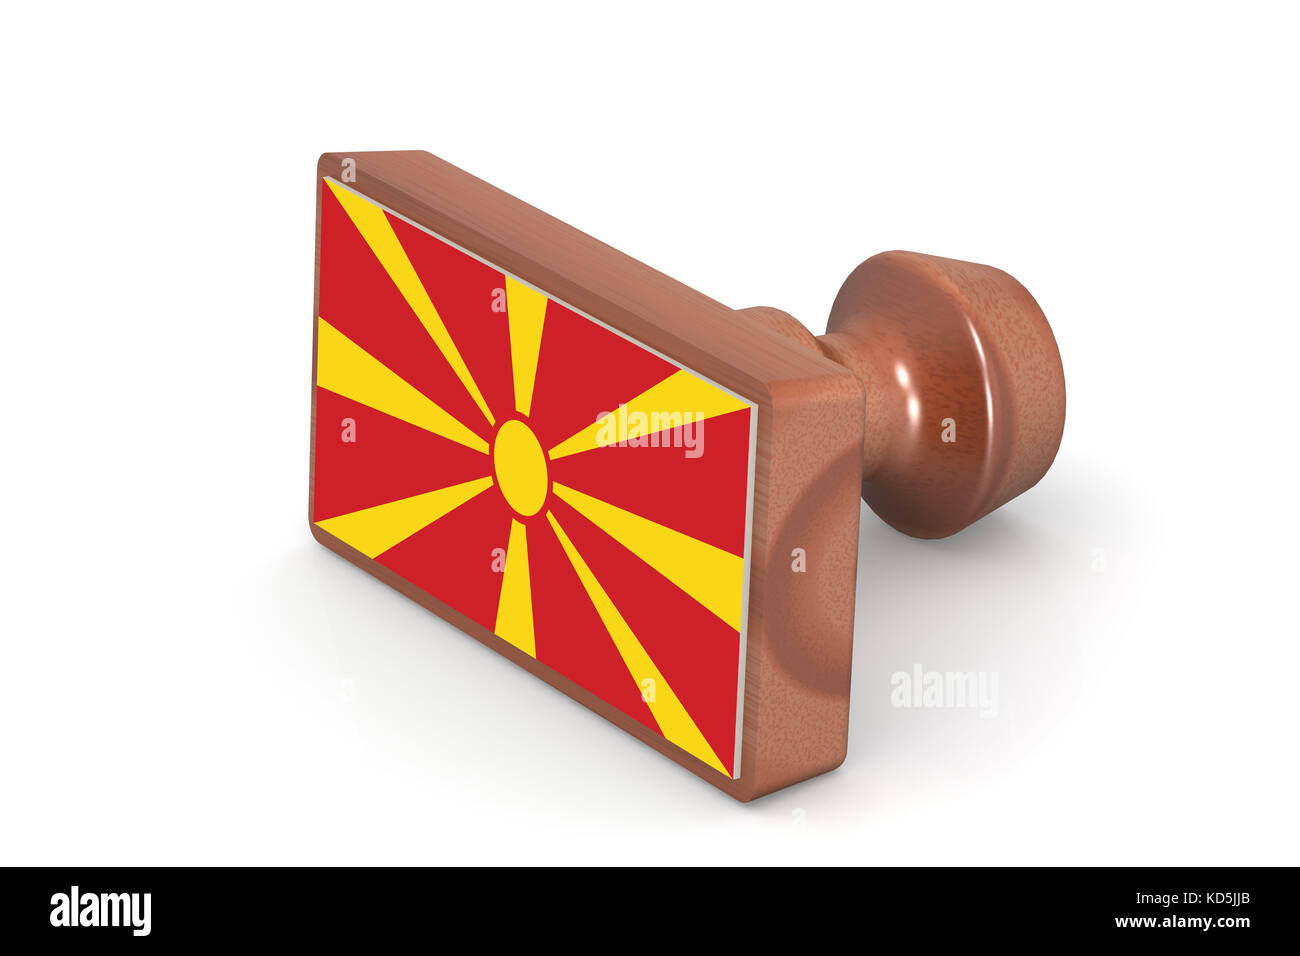 Wooden stamp with Macedonia flag image with hi-res rendered artwork that could be used for any graphic design. - Stock Image